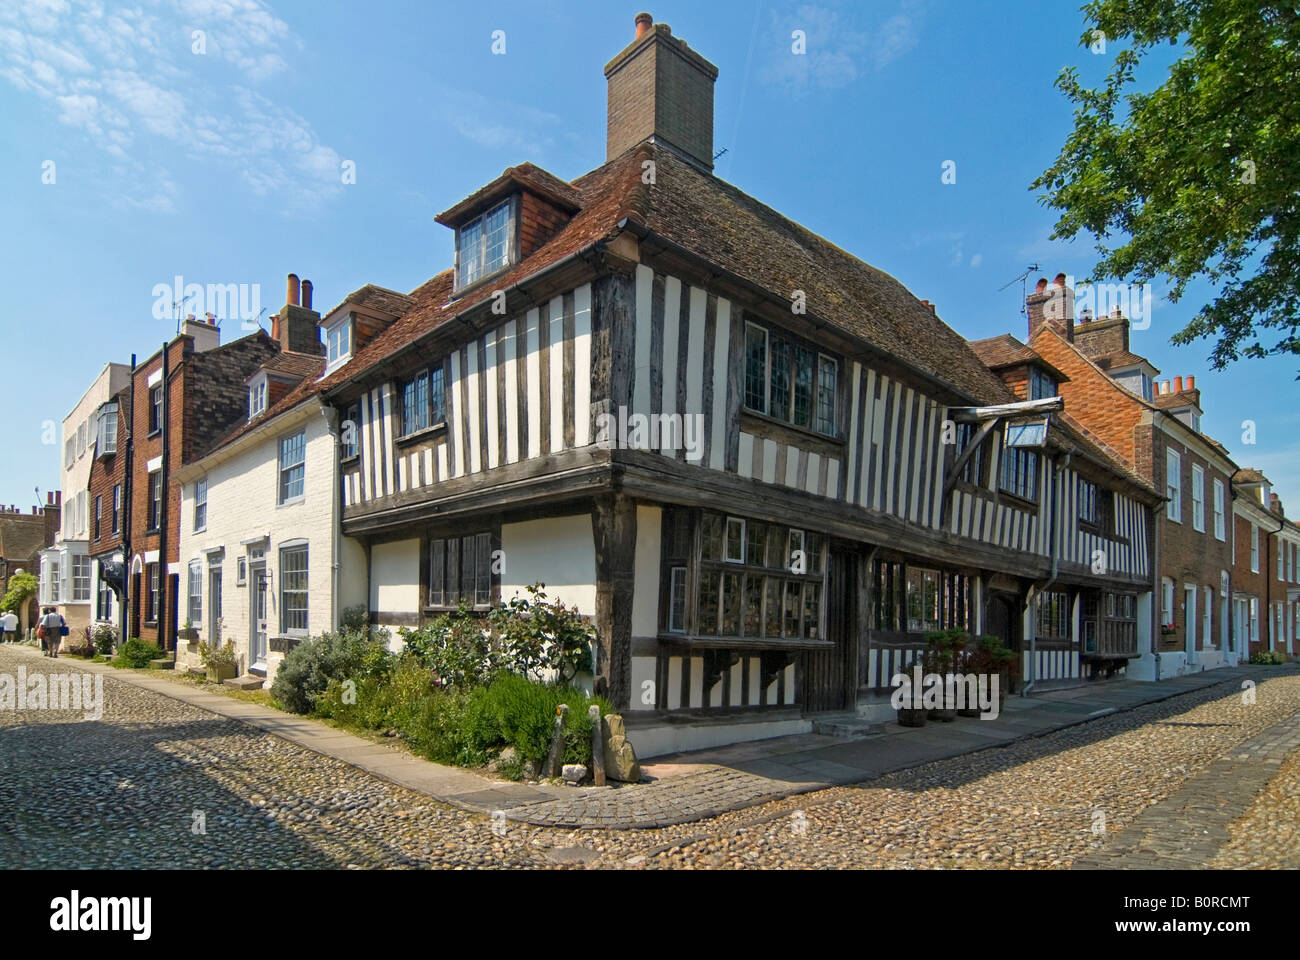 Horizontal wide angle of the beautiful Tudor cottages in Church Square in Rye on a sunny day. Stock Photo